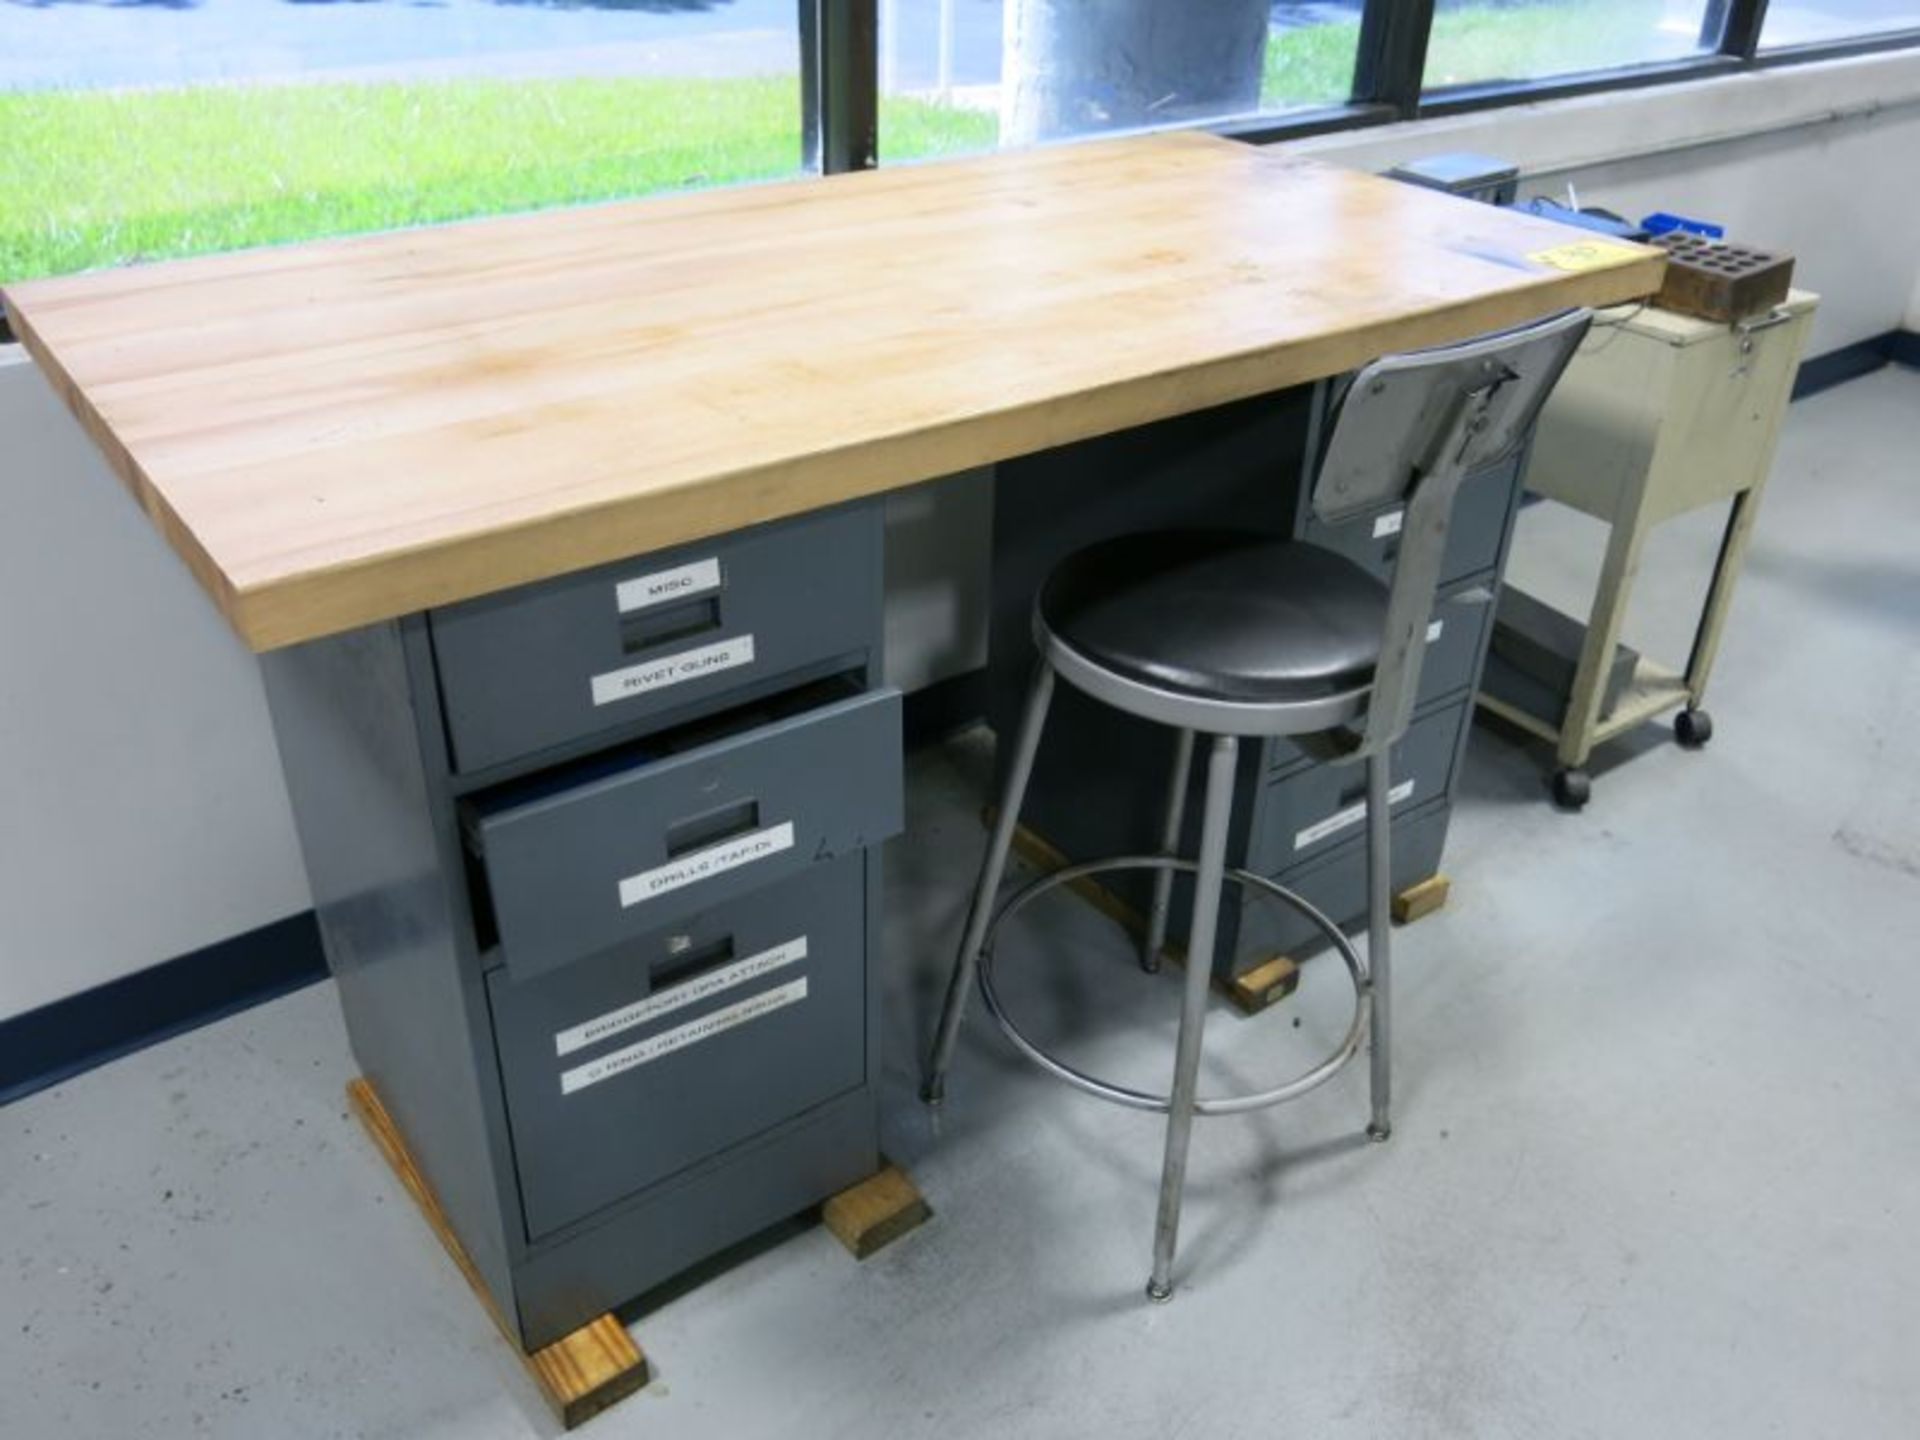 Work Bench & Cabinet - Image 2 of 3